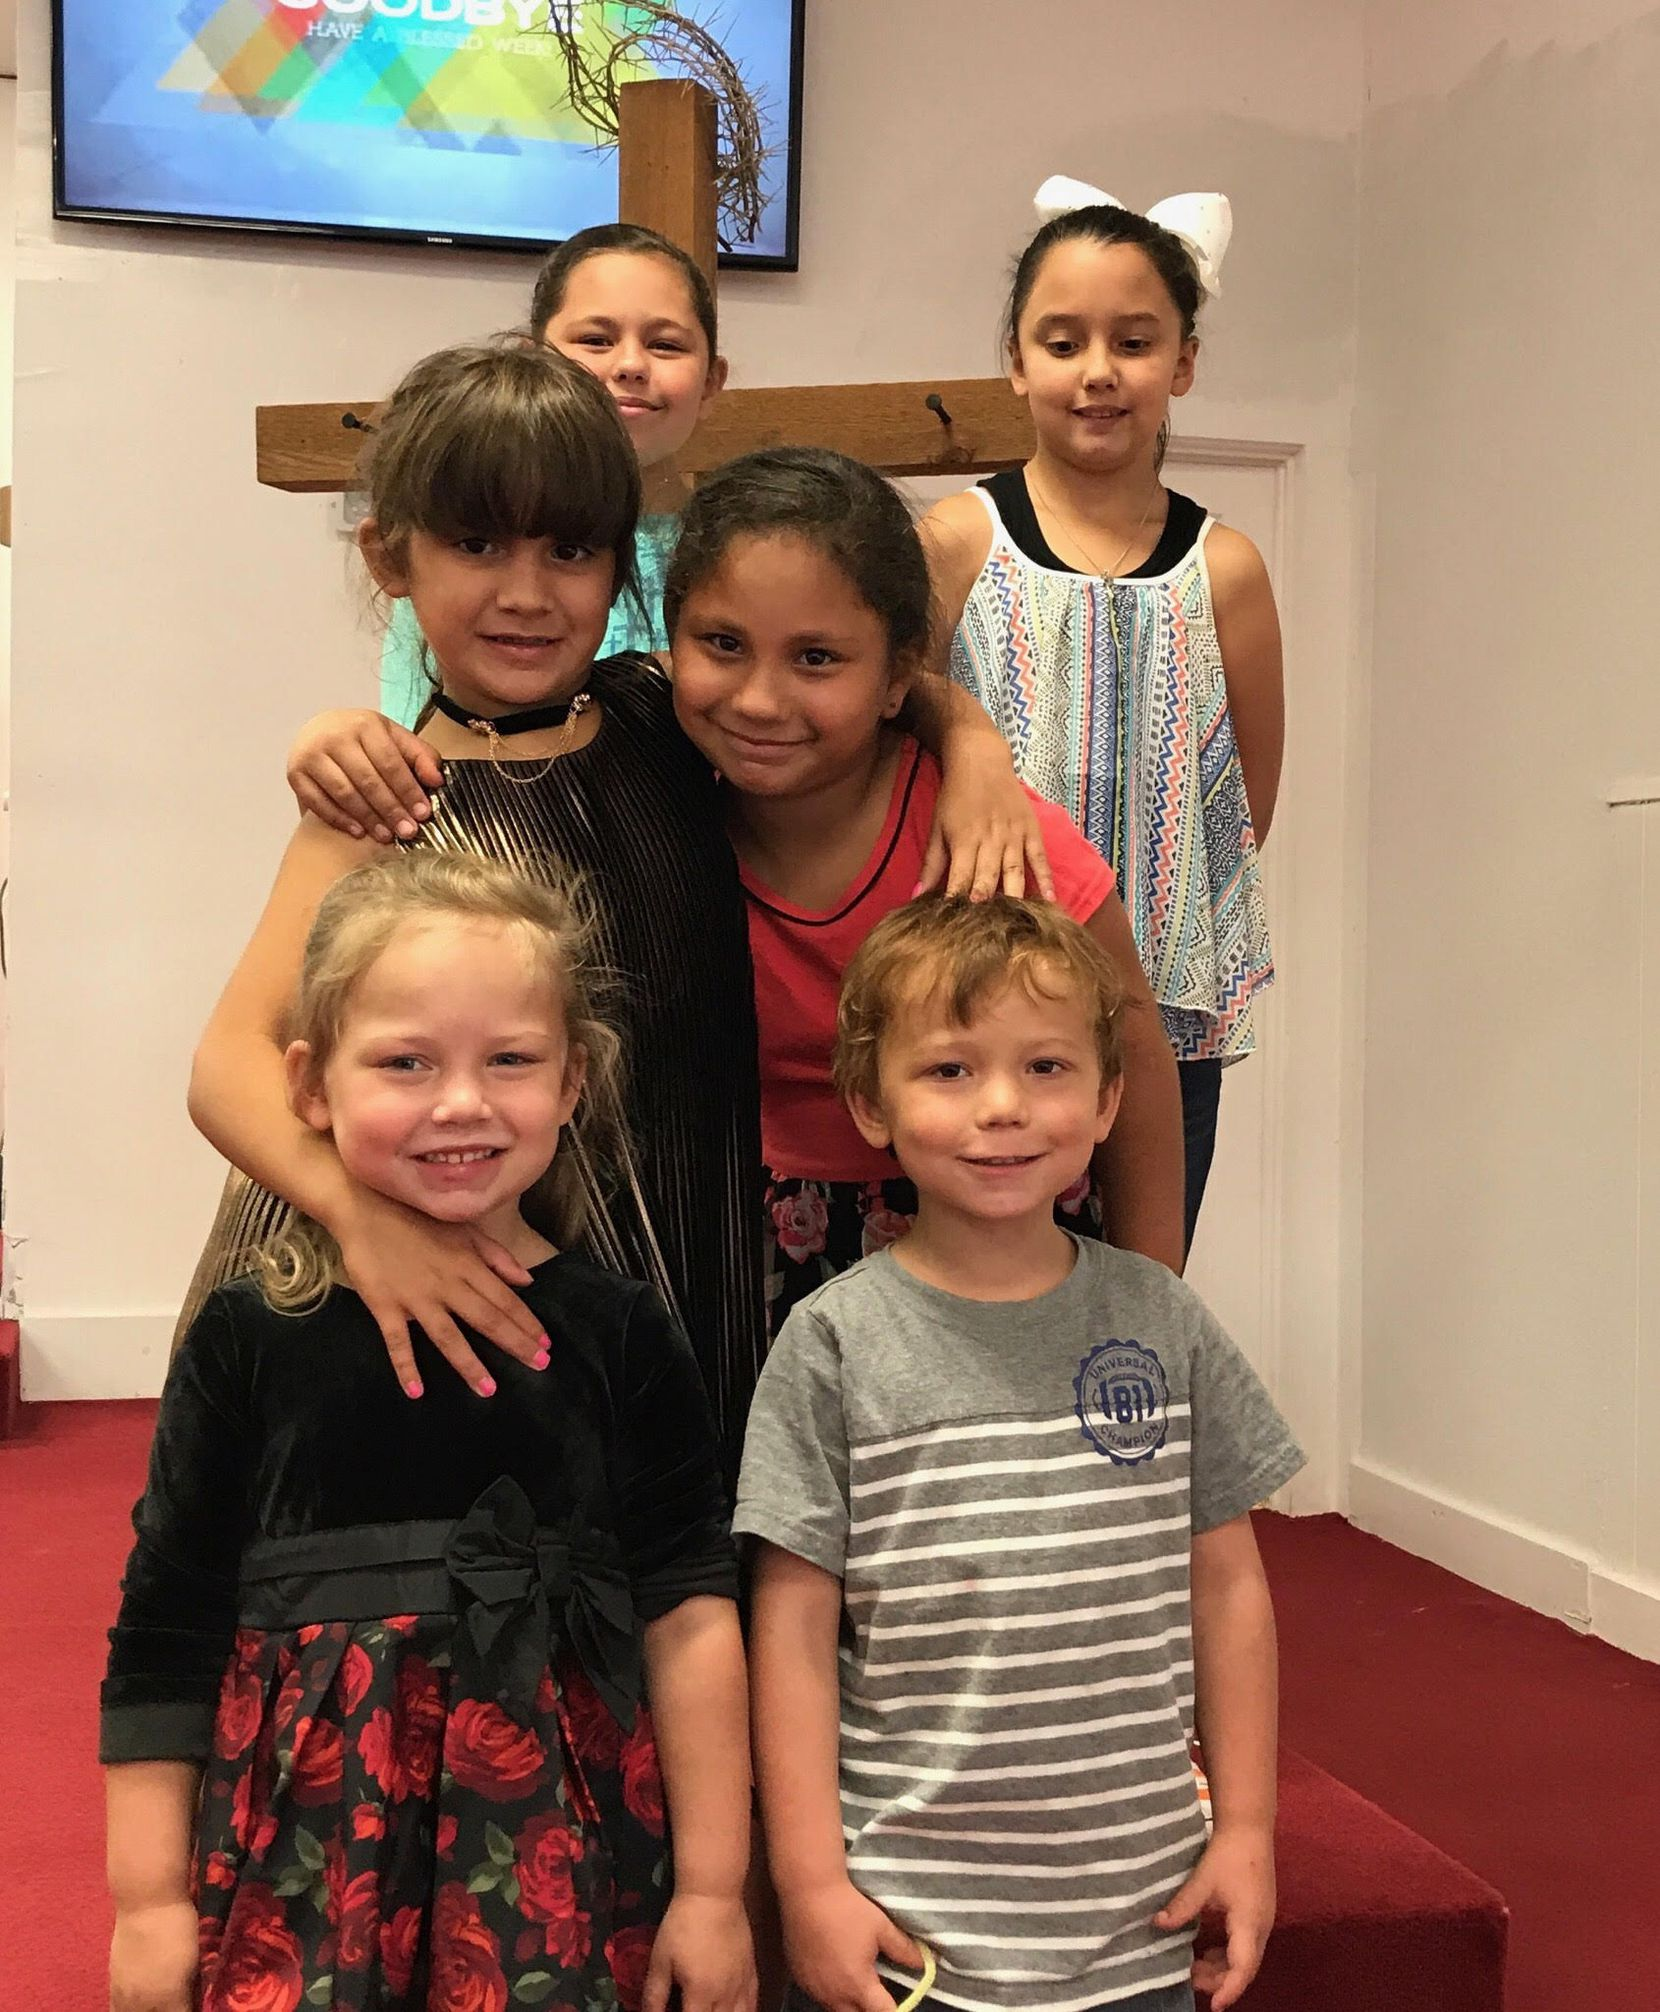 Bottom row: Brooke and Ryland Ward, both five. Middle row: Haley Ward and Emily Garza, 7. Top row: Rhianna Garza and McKinley Ward, 9. Brooke Ward and Emily Garza were killed in the shooting at the First Baptist Church of Sutherland Springs on Sunday, Nov. 5, 2017. Ryland Ward was out of surgery and stable as of Sunday night. (Photo courtesy of Michael Ward)